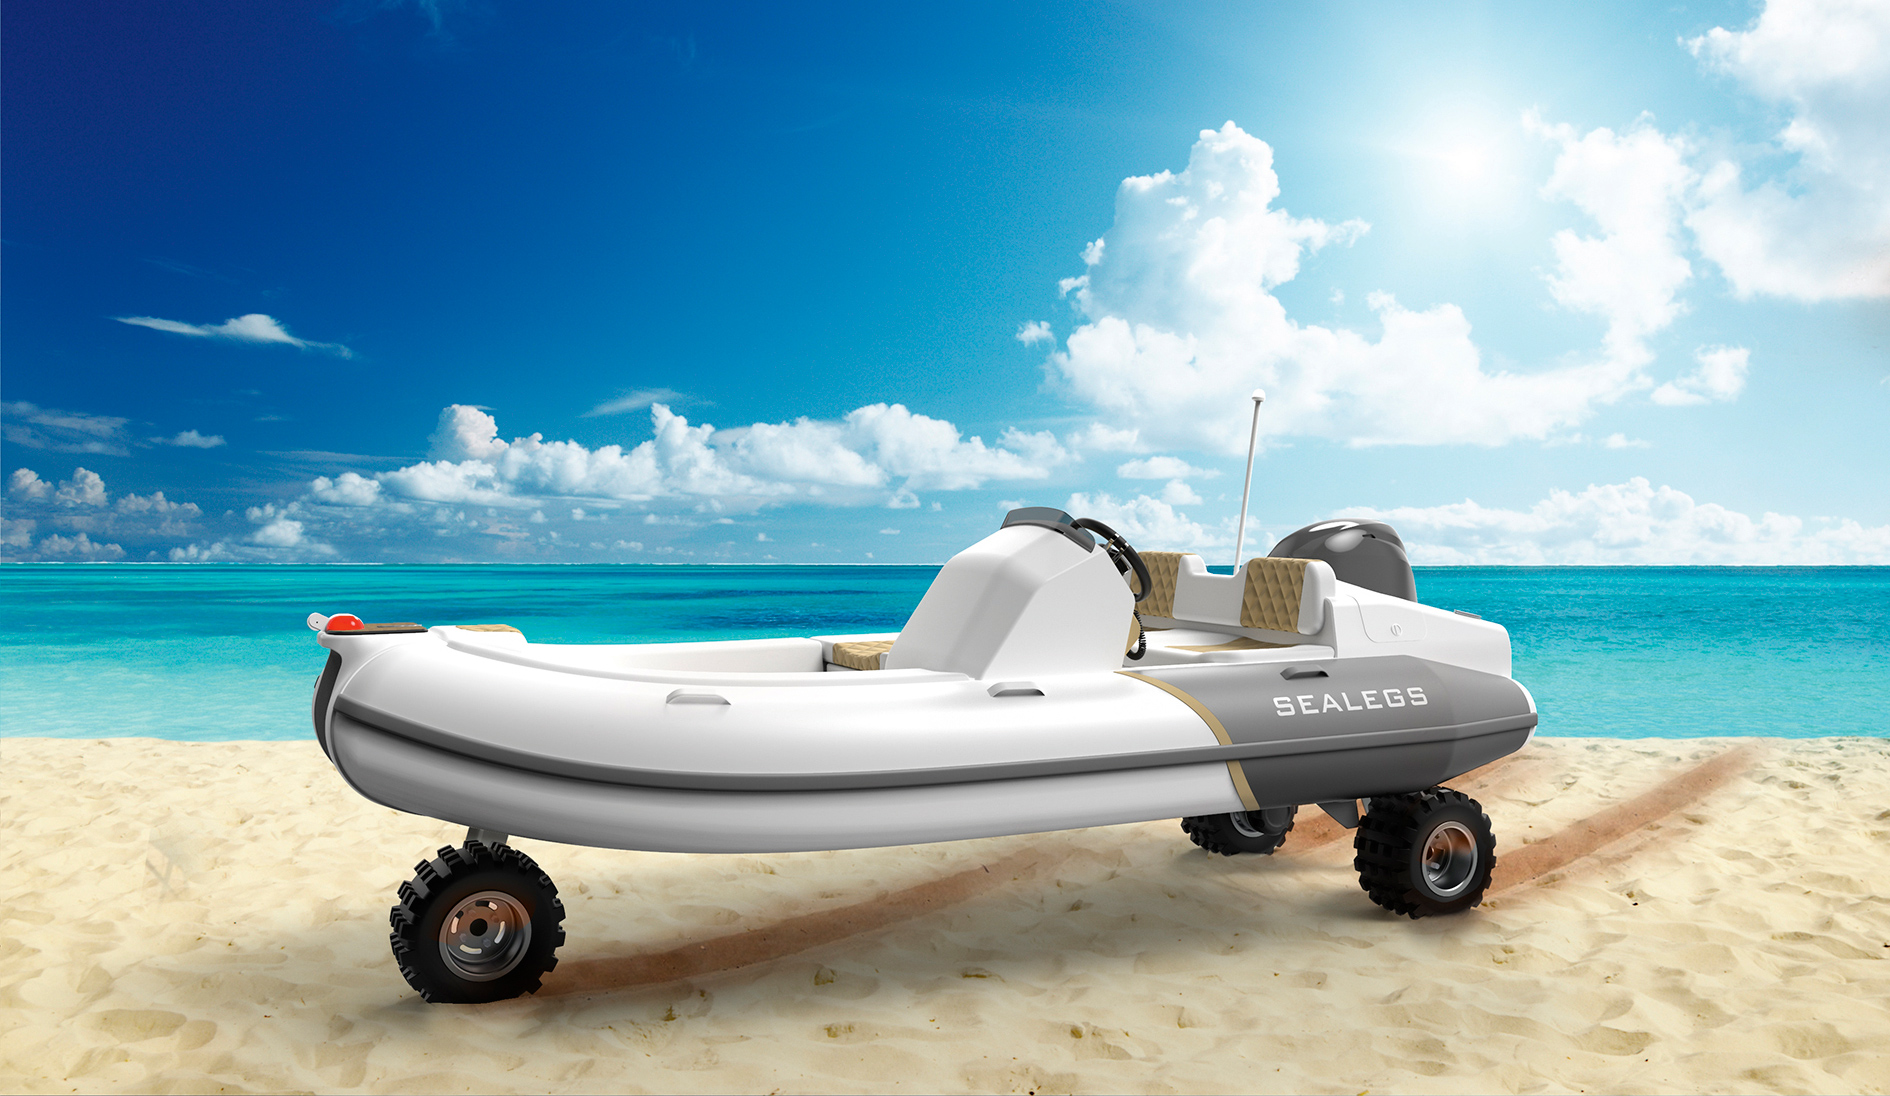 Sealegs 3.8m Tender first look: Mini amphibious boat could open up new horizons